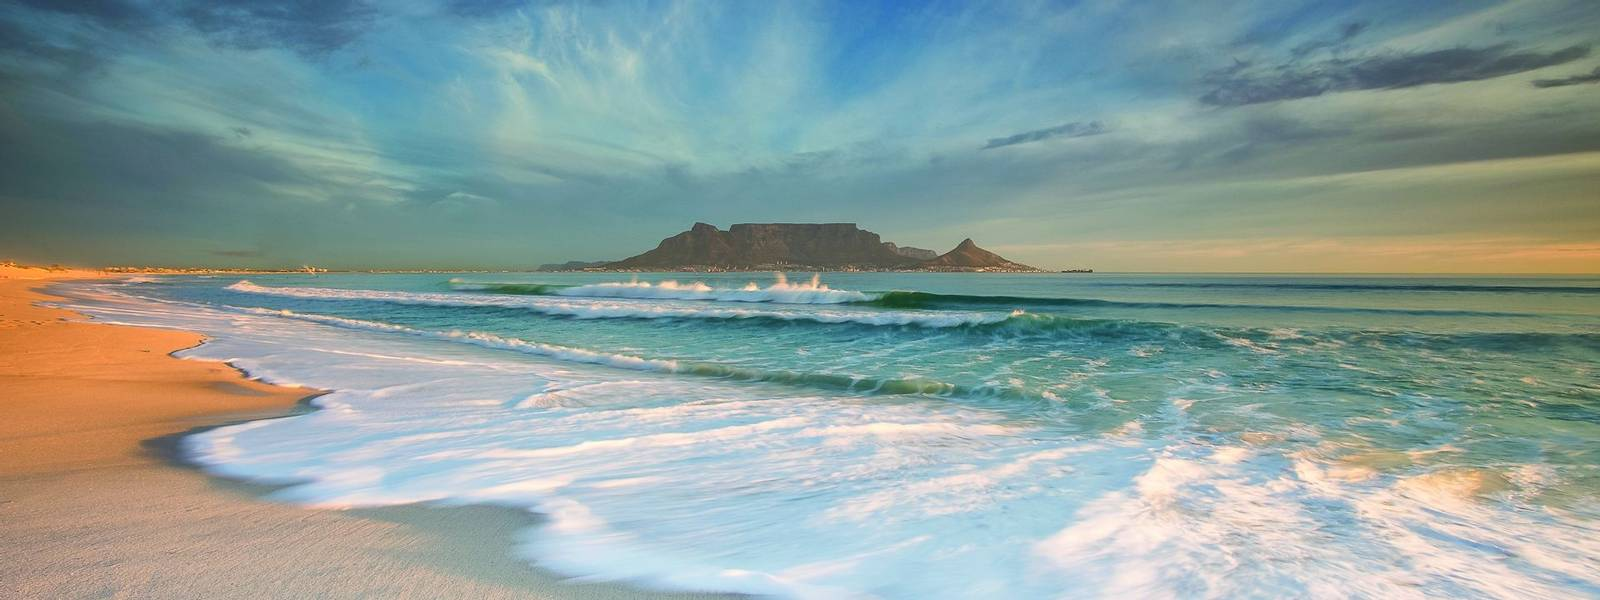 Beautiful wide angle landscape image of Table Mountain in Cape Town South Africa as seen from Blouberg beach